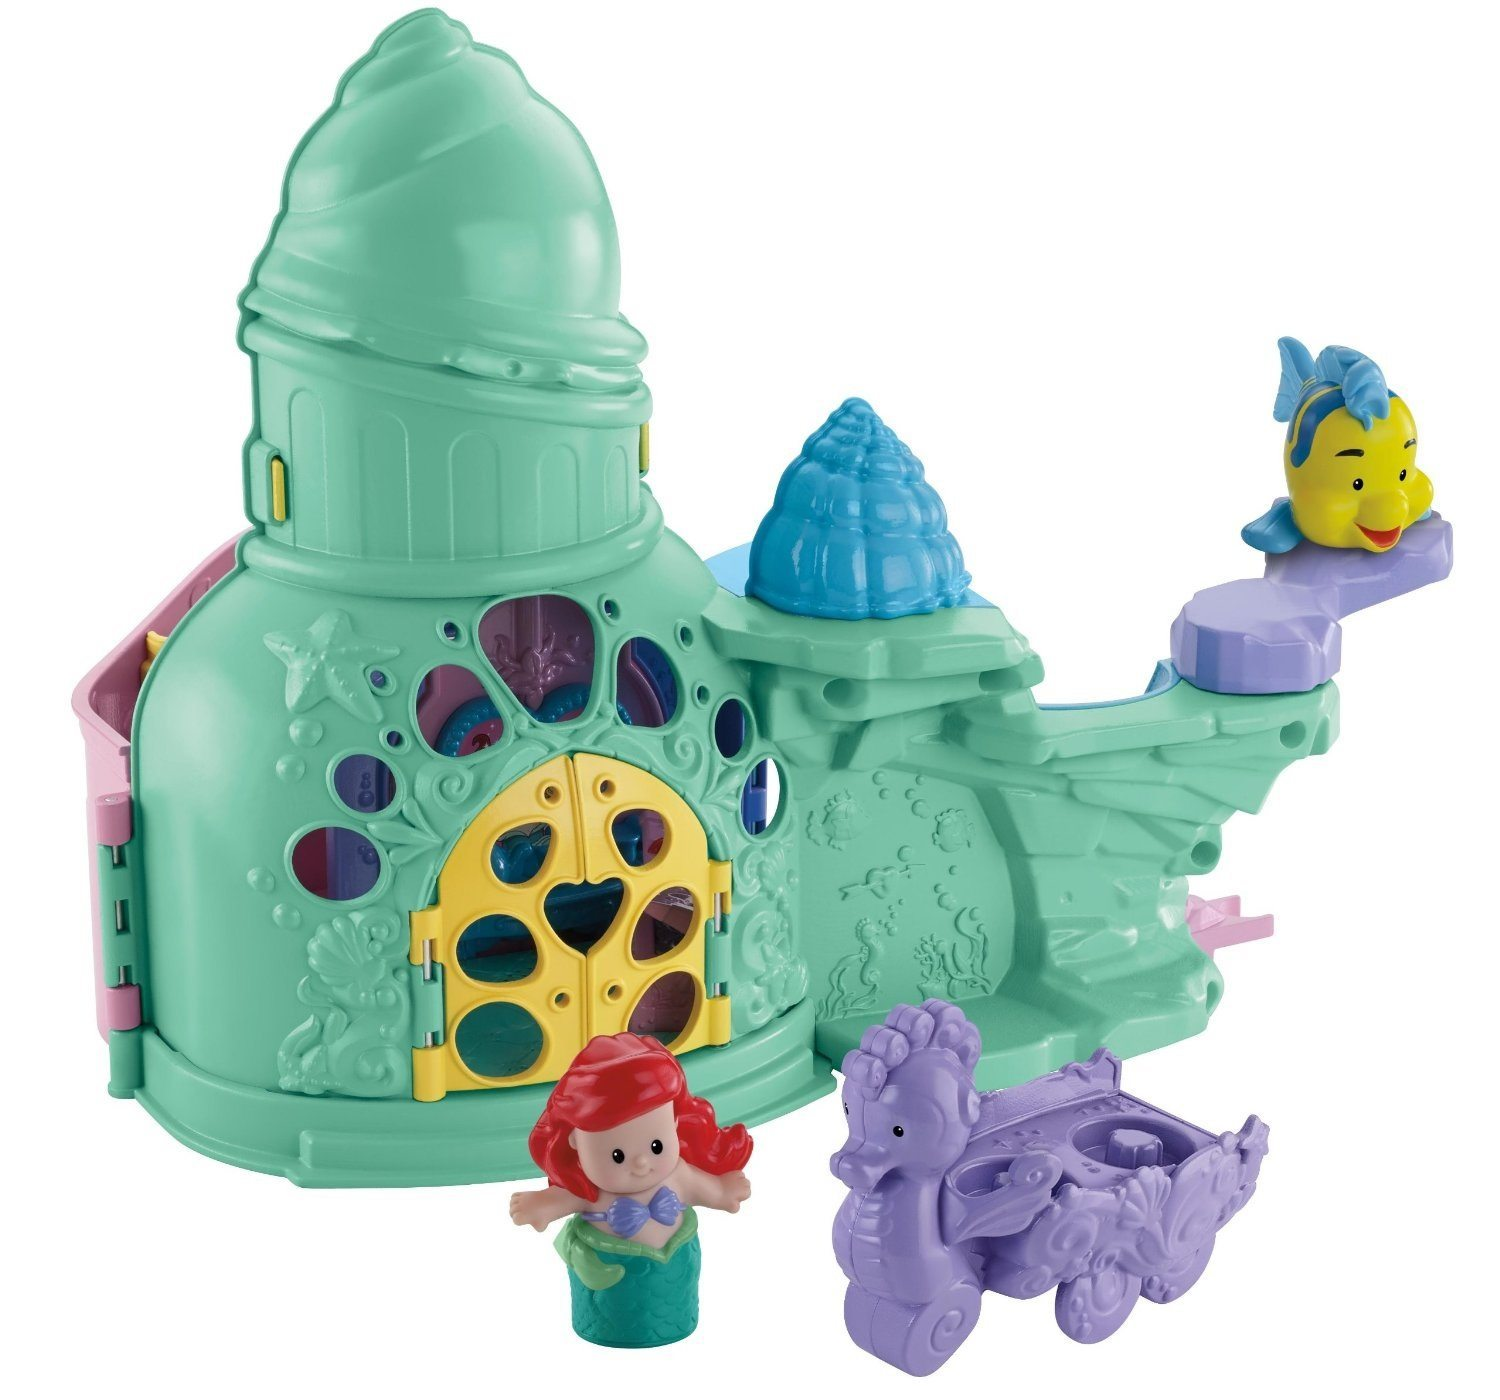 Fisher-Price Little People Disney Princess Ariel's Castle Play Set